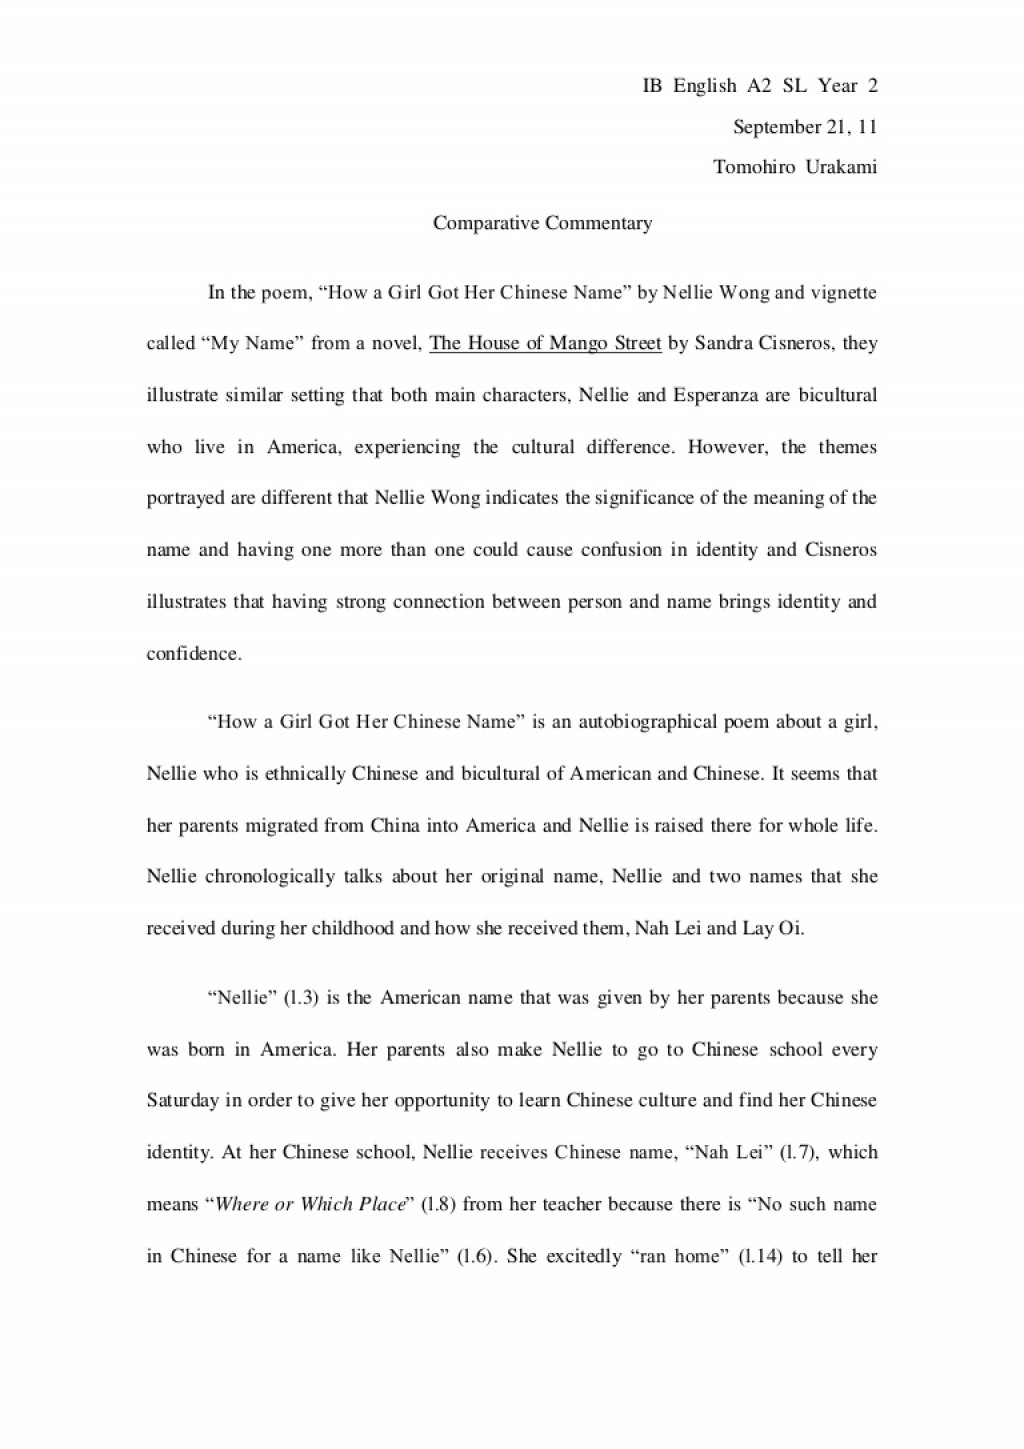 008 Compare And Contrast Essays Comparativeessaydraft Phpapp02 Thumbnail Magnificent Essay Examples 3rd Grade 4th Topics Large